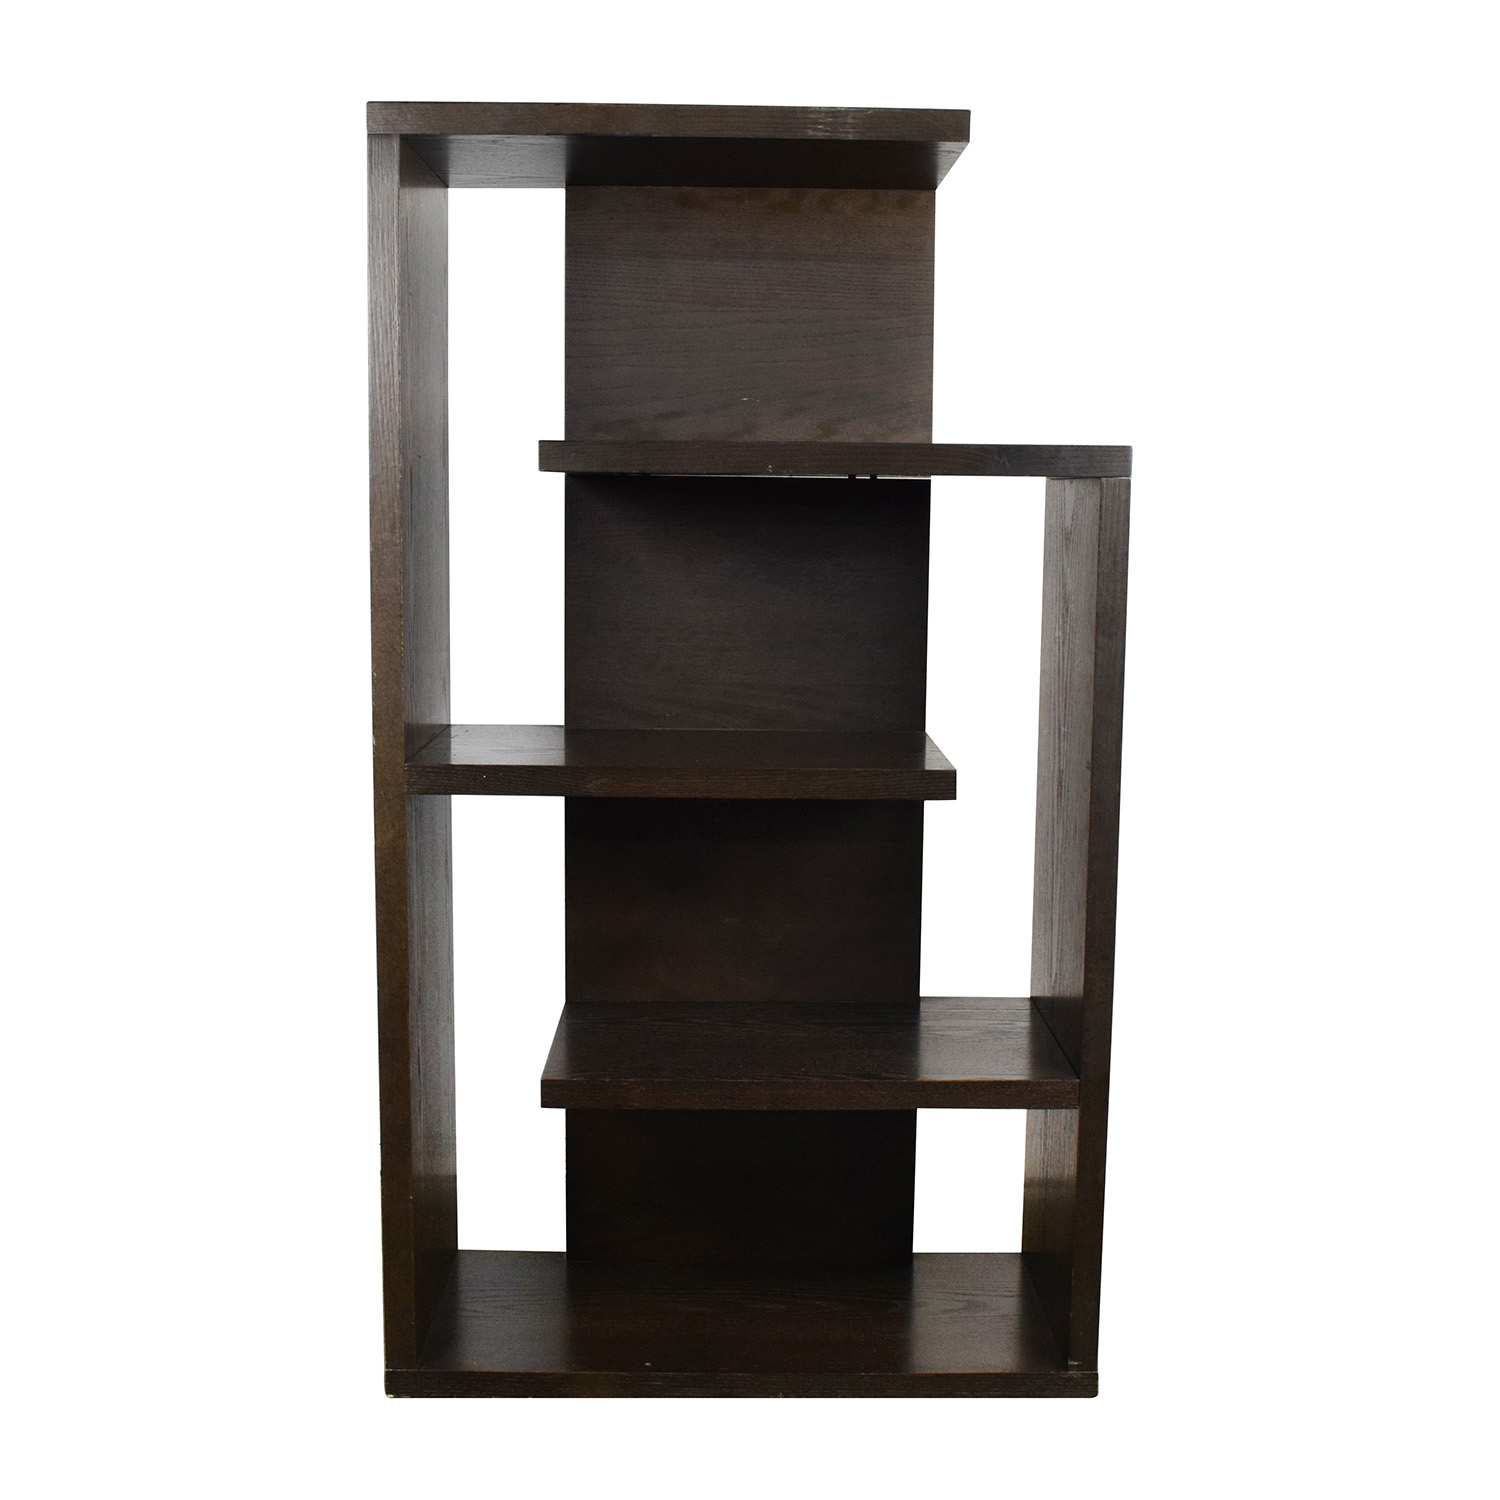 buy Scandinavian Designs Scandinavian Designs Shelving and Display Unit online